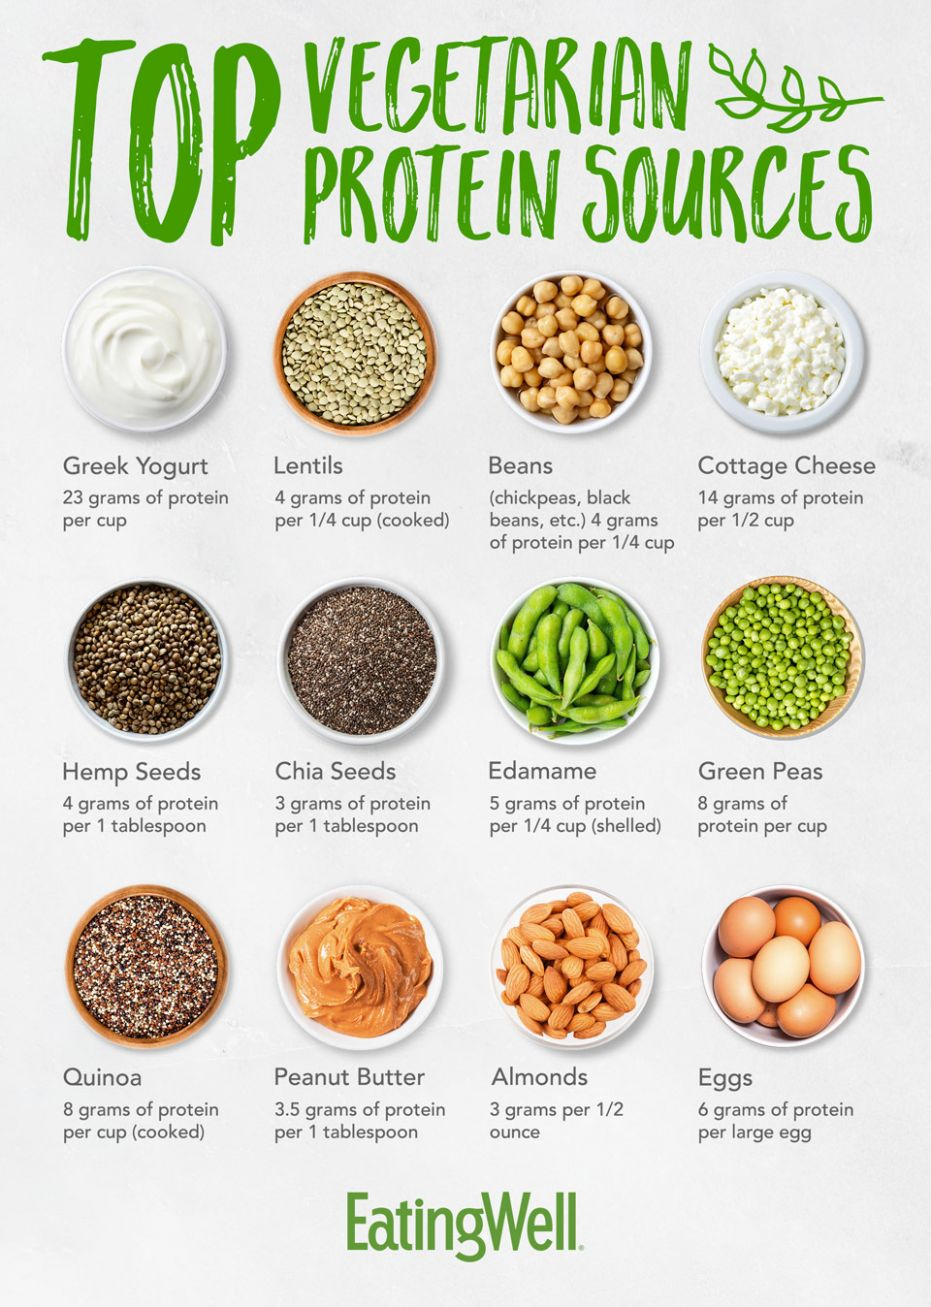 Top Vegetarian Protein Sources   EatingWell - Vegetarian Recipes Rich In Protein